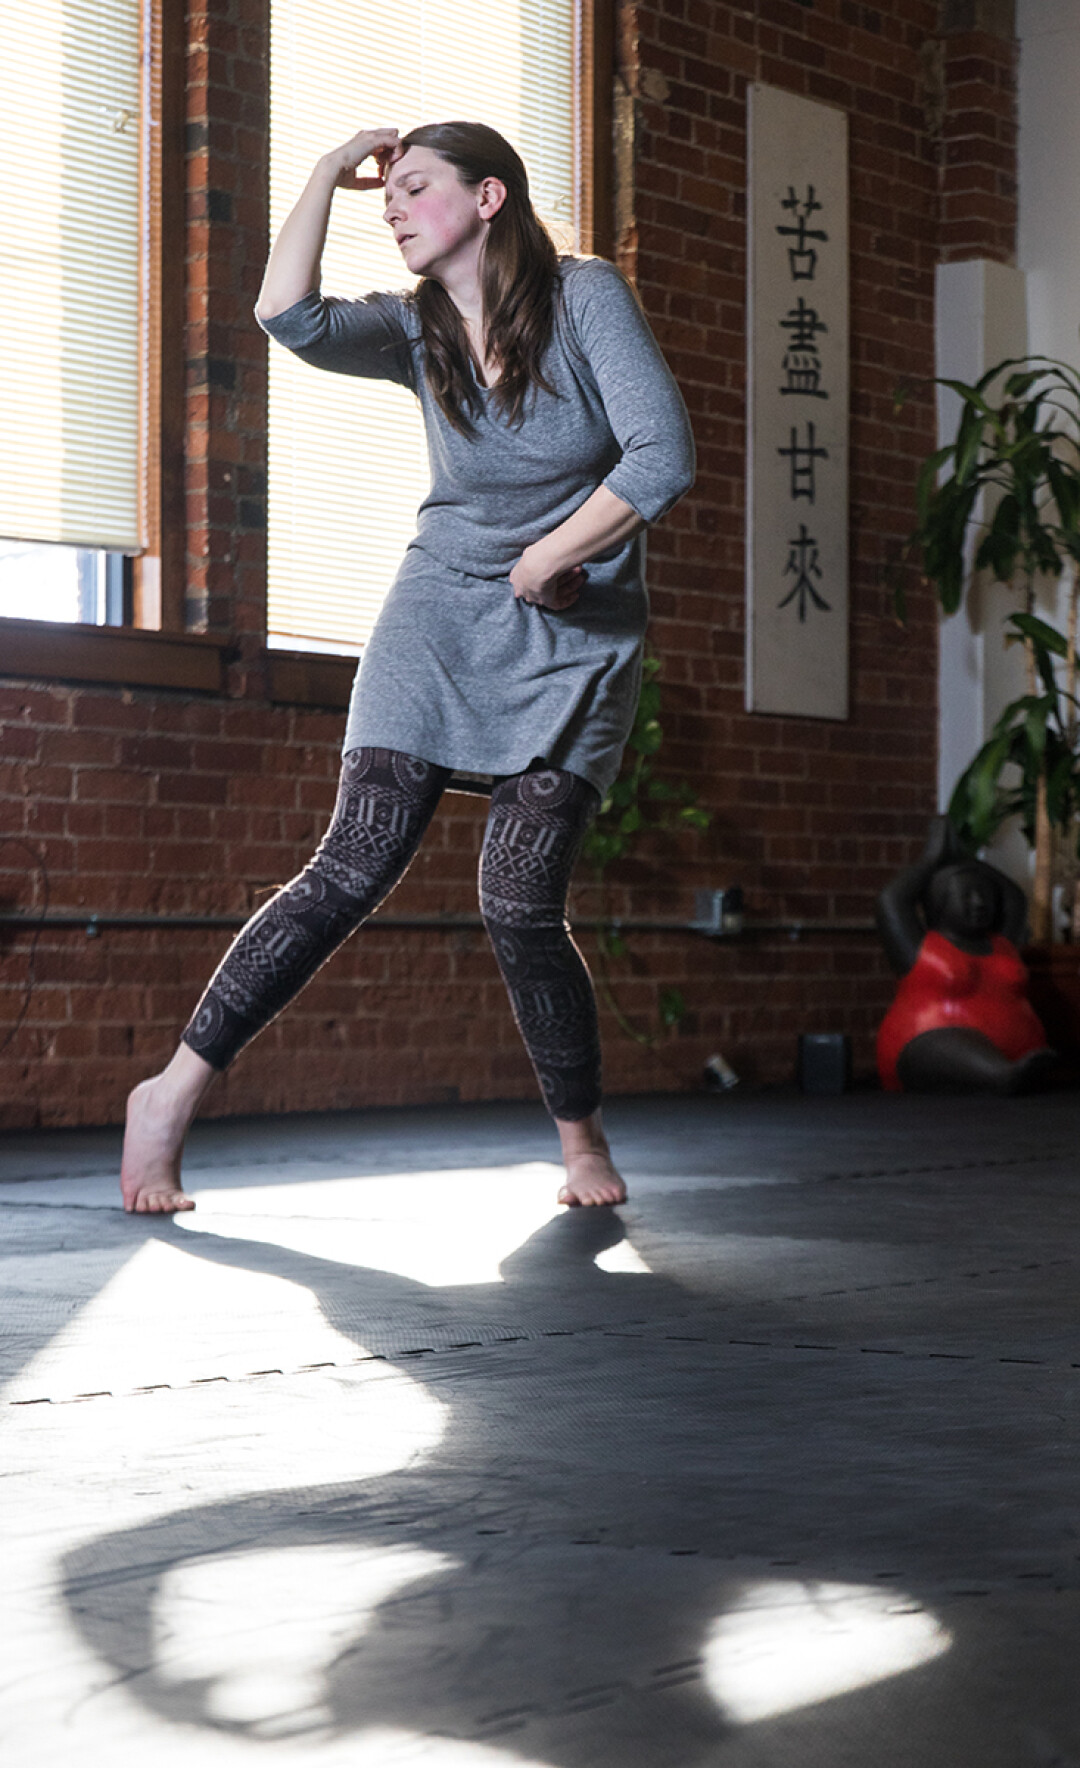 BaredFeet Company is a new dance organization in Eau Claire headed up by Lynn Buske, with the intent of furthering local appreciation for the art form and raising funds for her nonprofit.